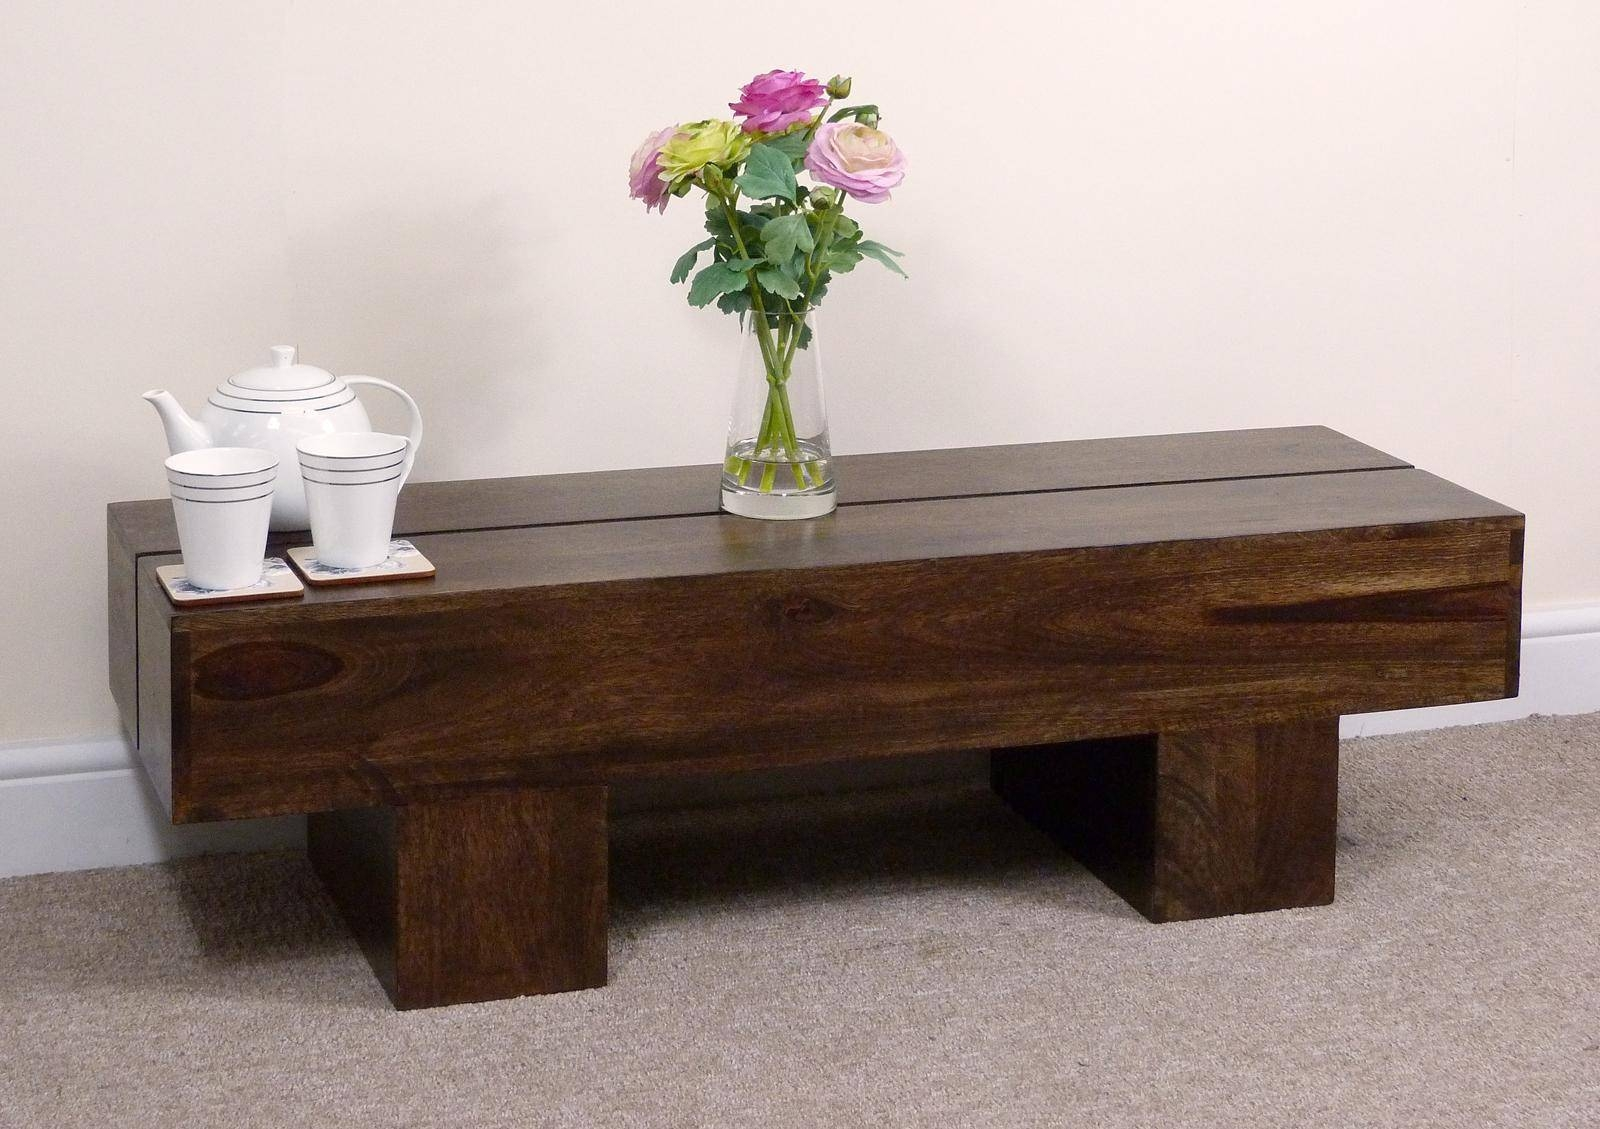 Coffee Table And Tv Unit Sets - See Here — Coffee Tables Ideas intended for Coffee Table And Tv Unit Sets (Image 9 of 30)